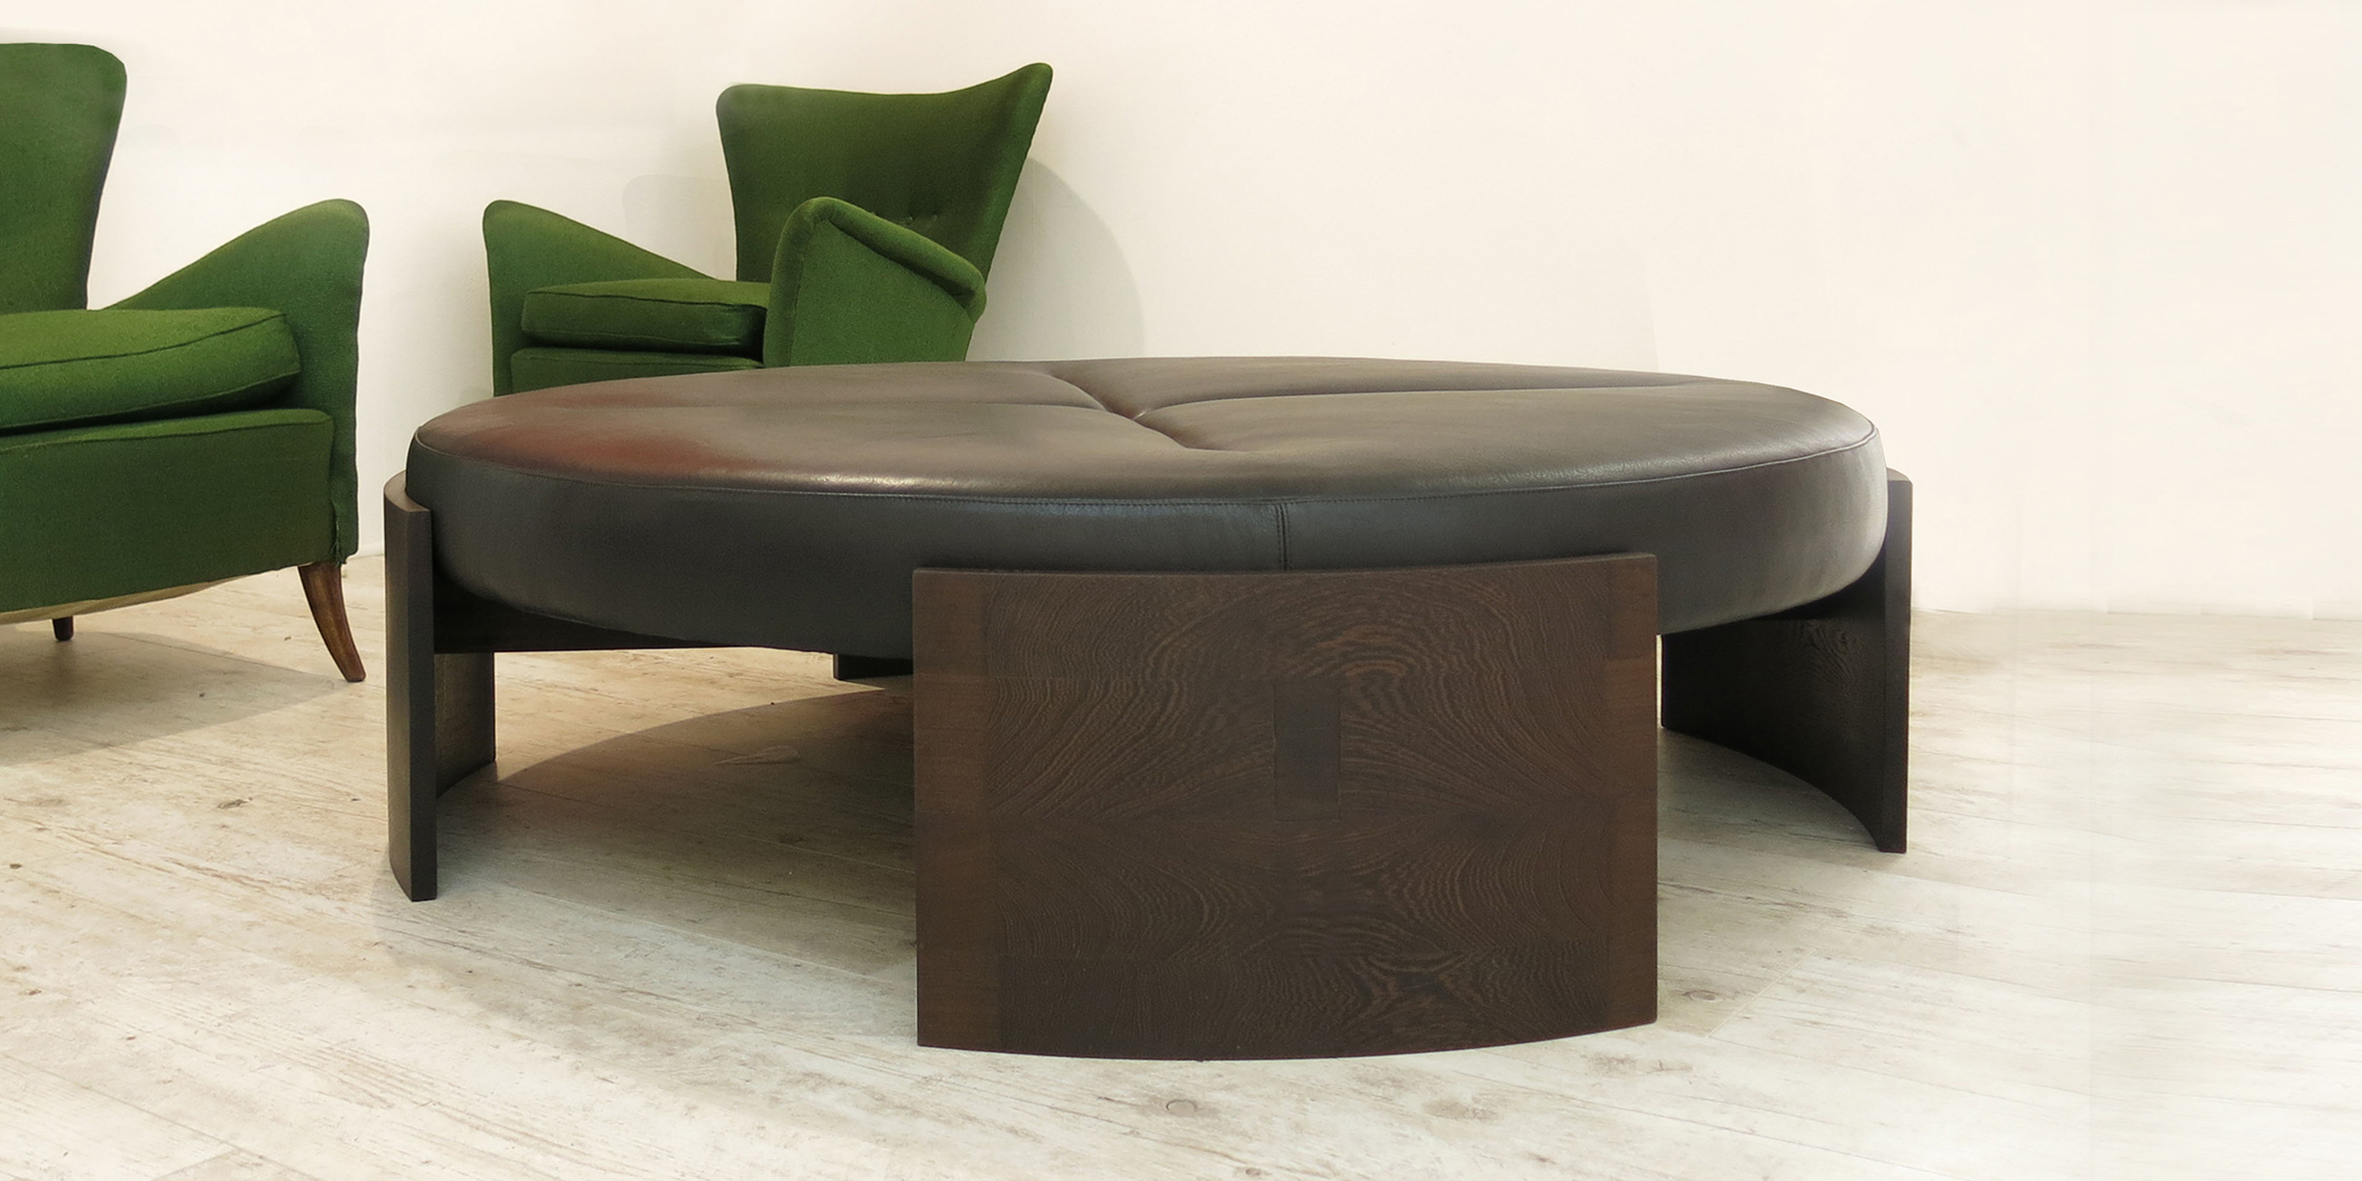 fbs - neclace table, 1400 l x 400 h, solide wenge with black leather upholstery top 2